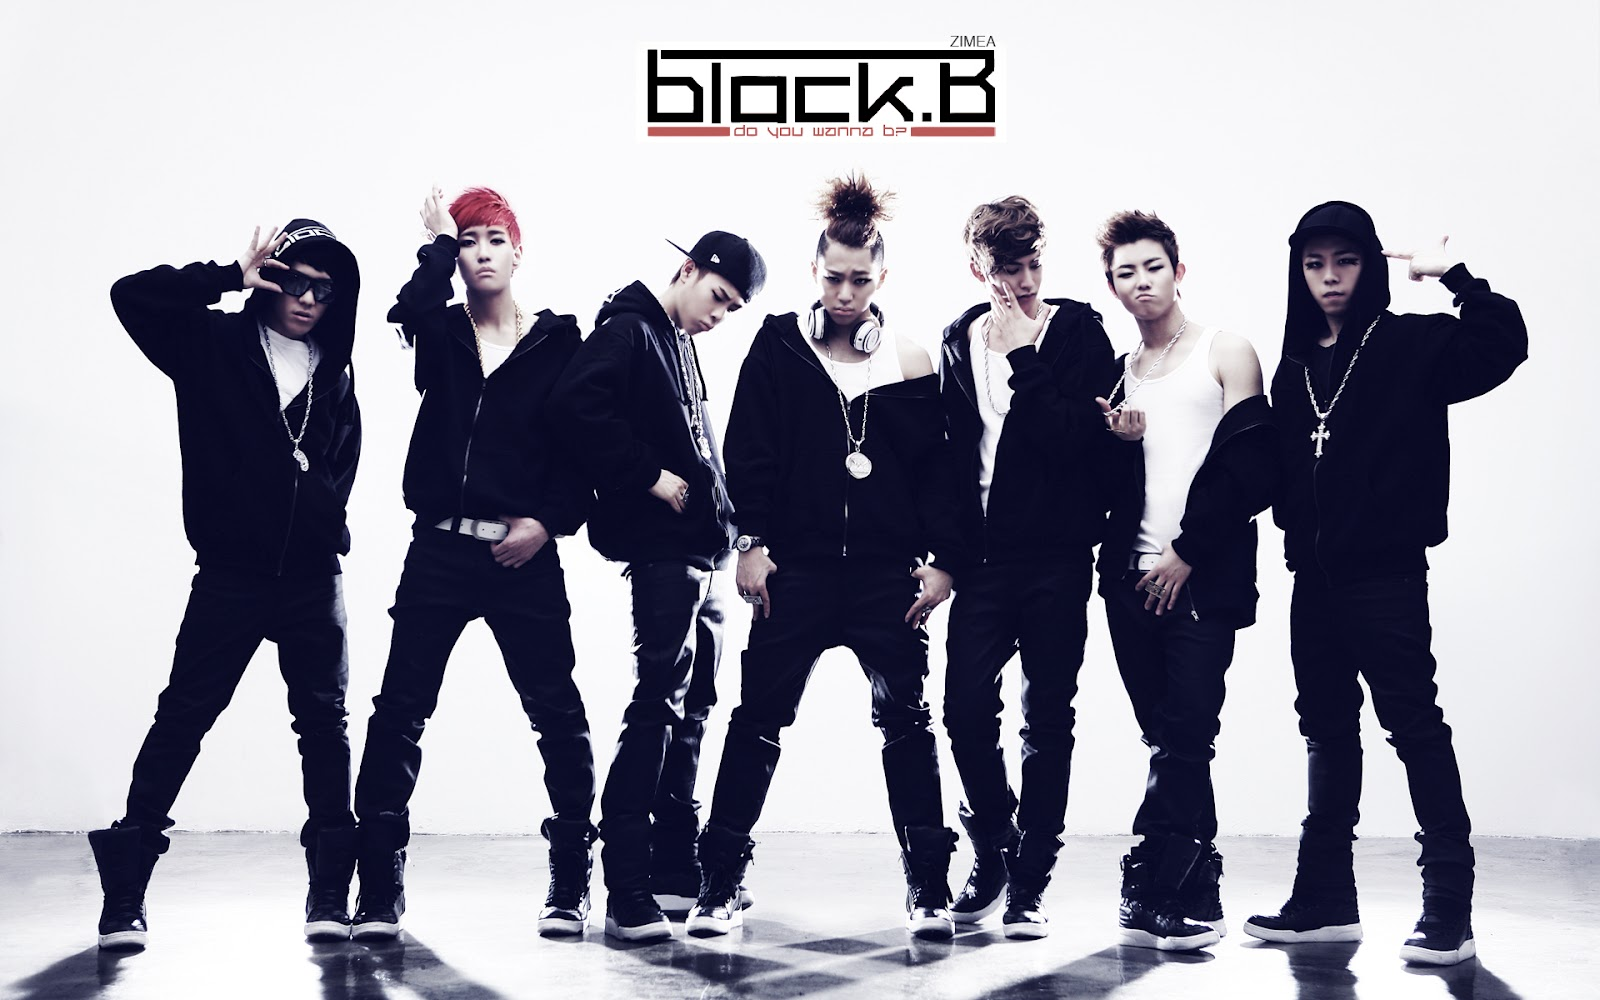 MY LOVELY BLOCK B